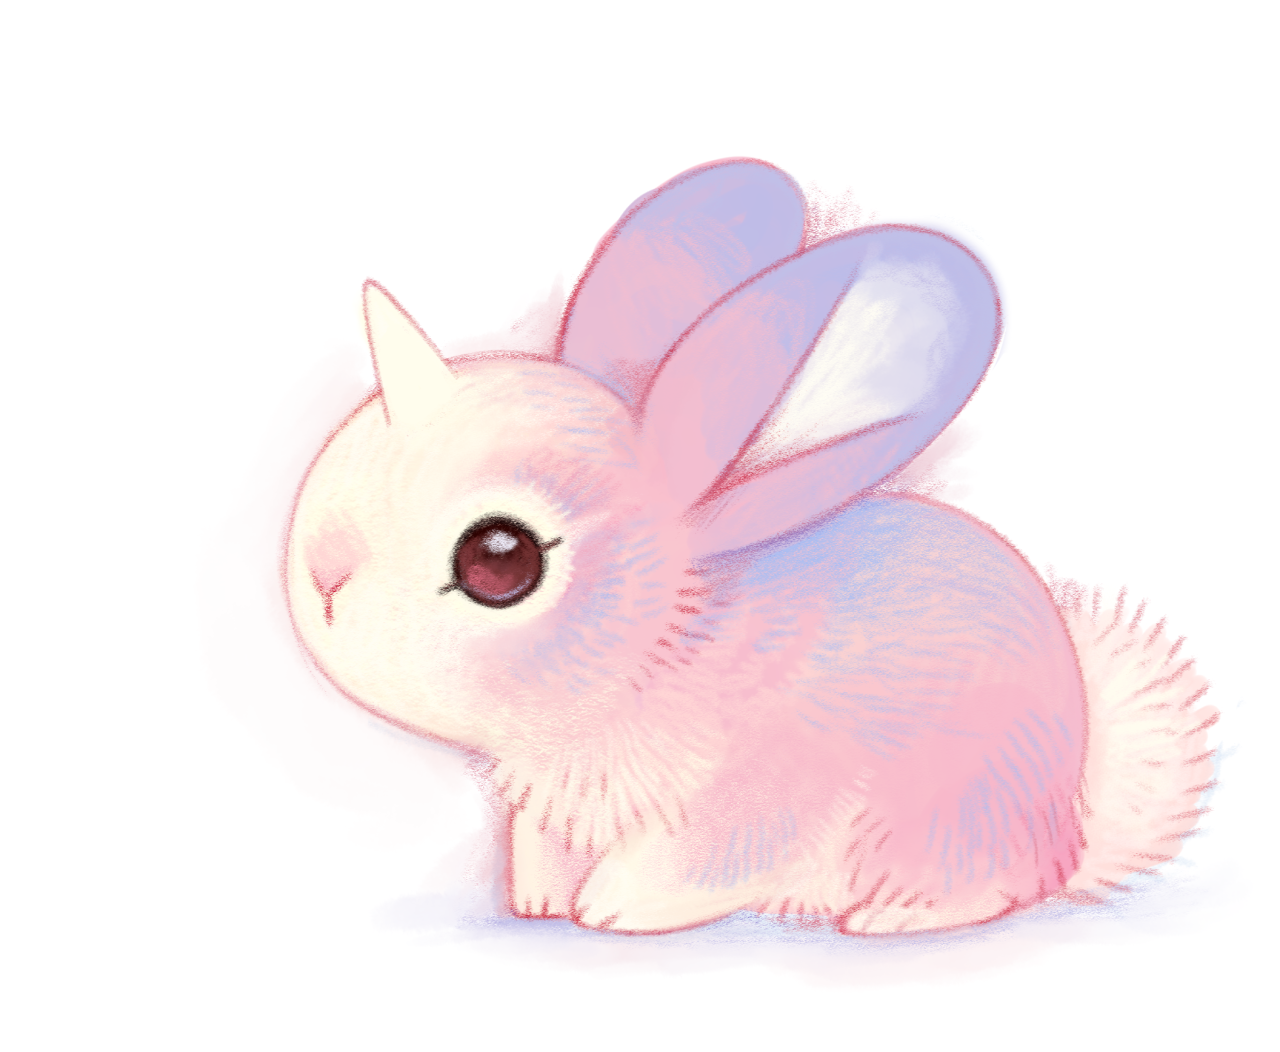 Bunnicorn Or Unibunn Animal Drawings Cute Animal Drawings Cute Art